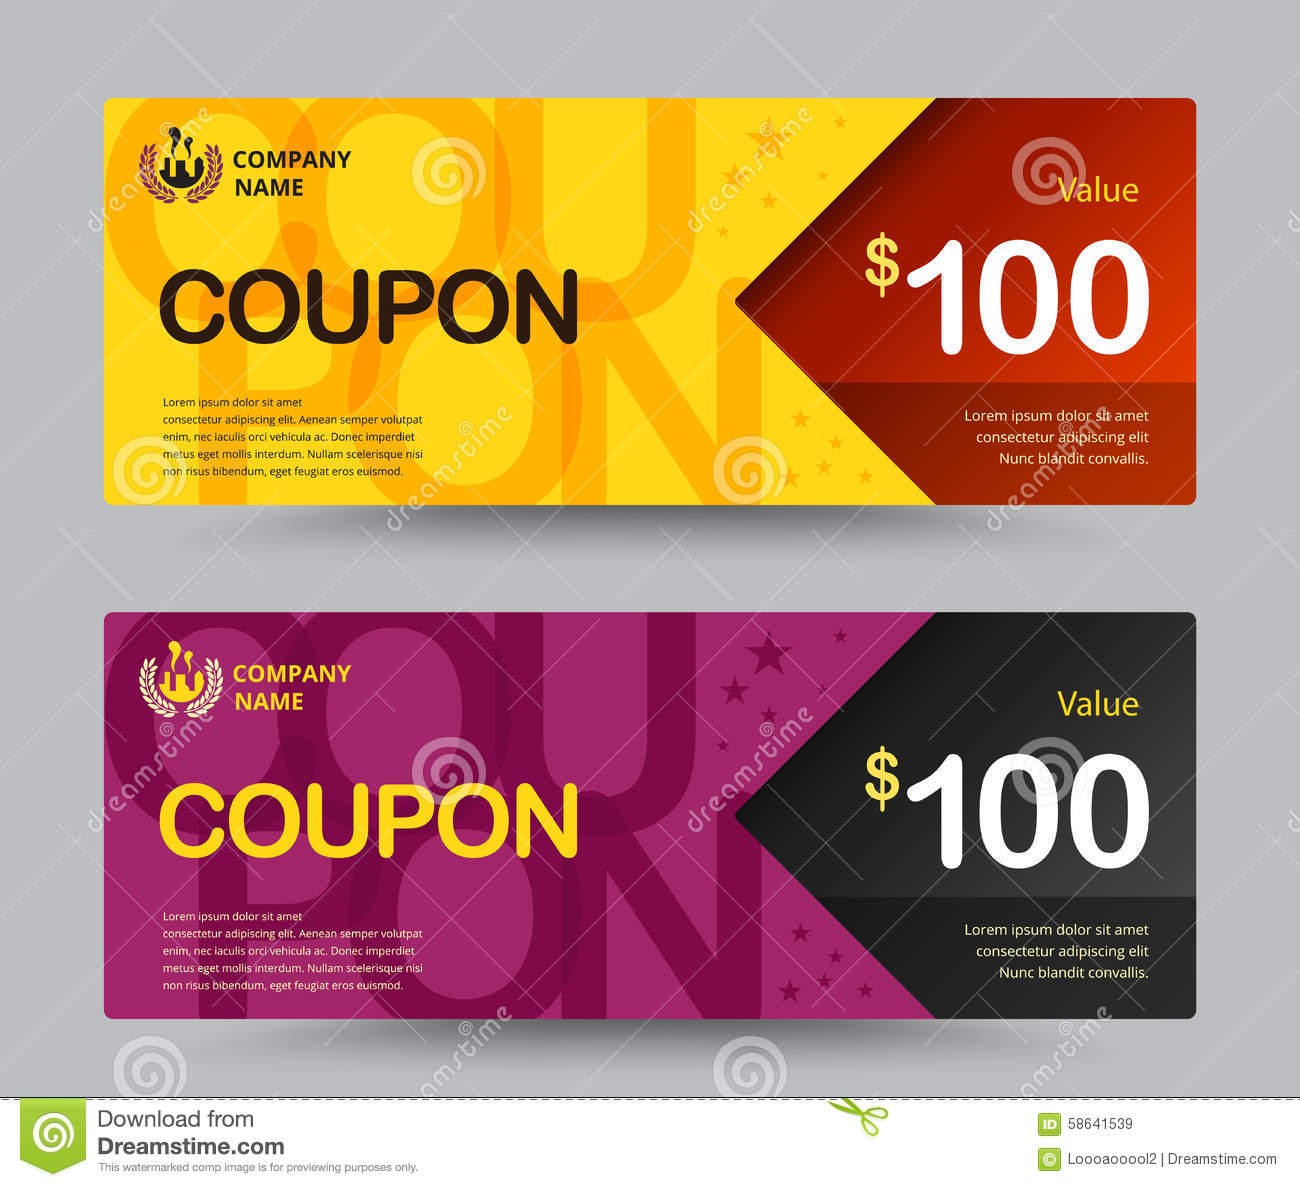 What is a temporary payment coupon